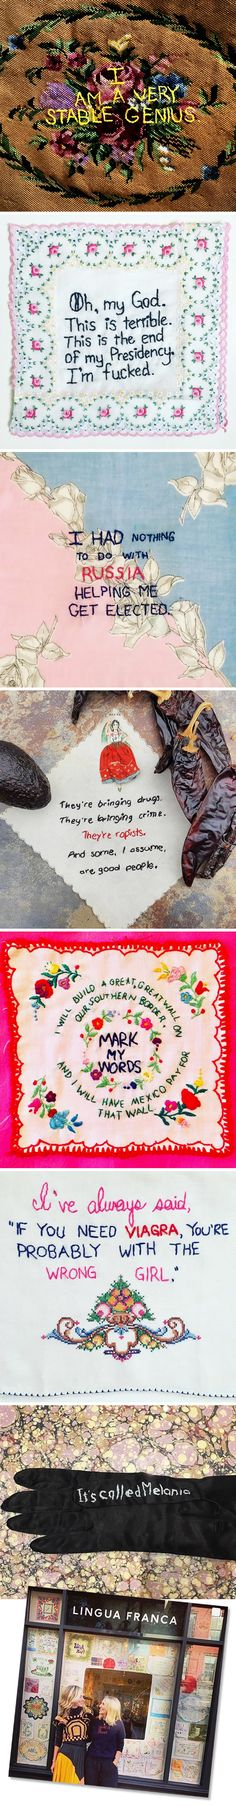 The Jealous Curator /// curated contemporary art /// diana weymar {tiny pricks project} Ridiculous Quotes, The Wrong Girl, Digital Art Gallery, Collage Making, Social Activities, Wool Applique, Creative Outlet, Needle And Thread, Embroidery Thread